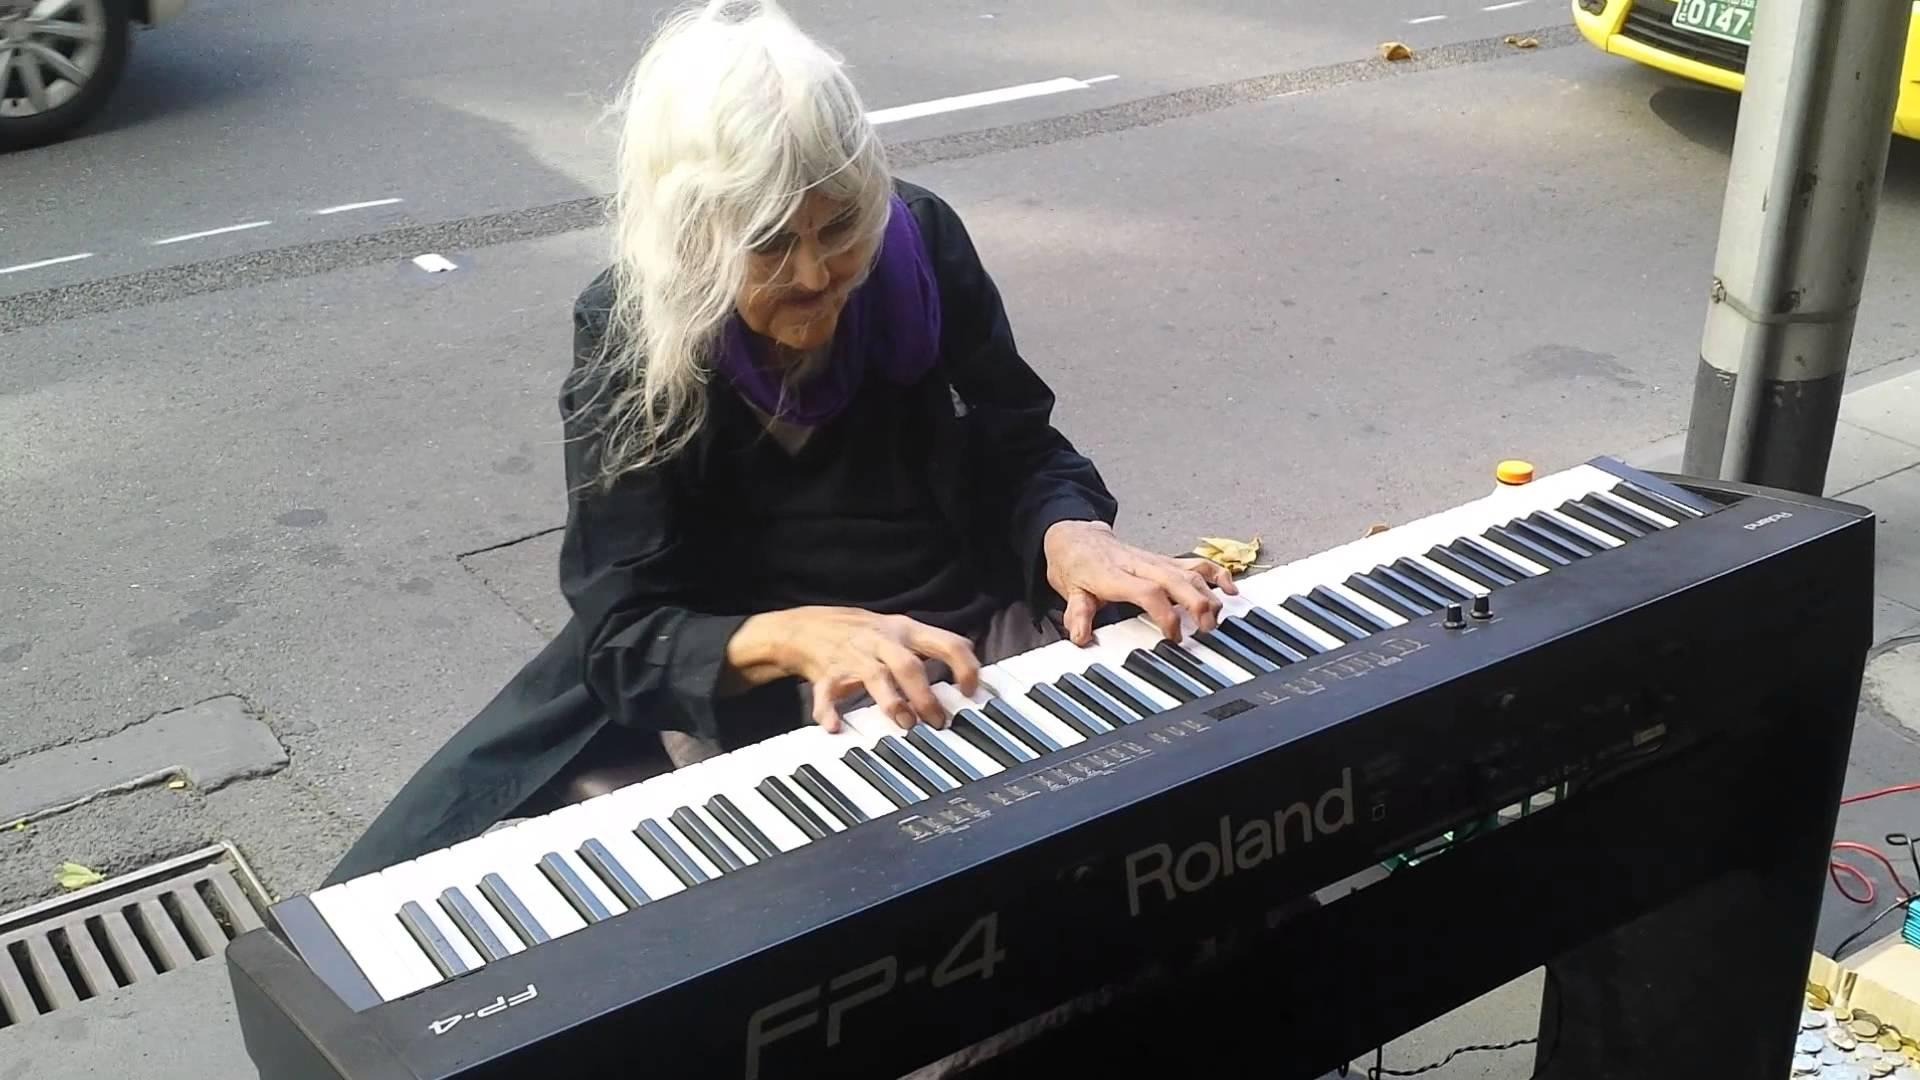 Melbourne Piano Street Performer